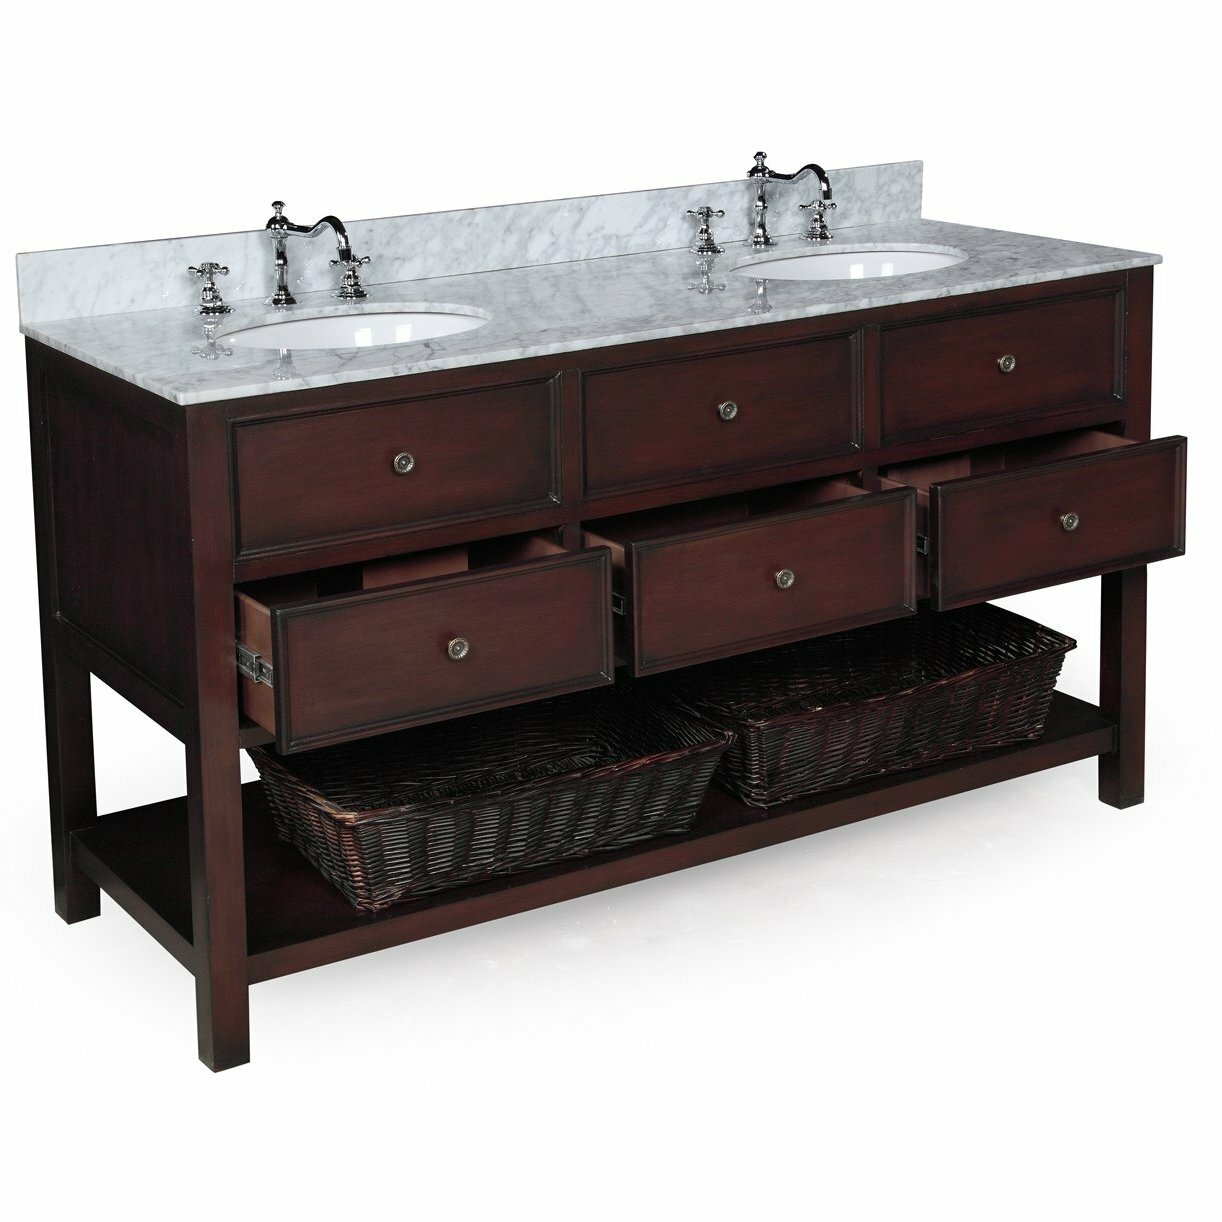 Bathroom Sinks And Cabinets | Pottery Barn Vanity | Pottery Barn Single Sink Vanity